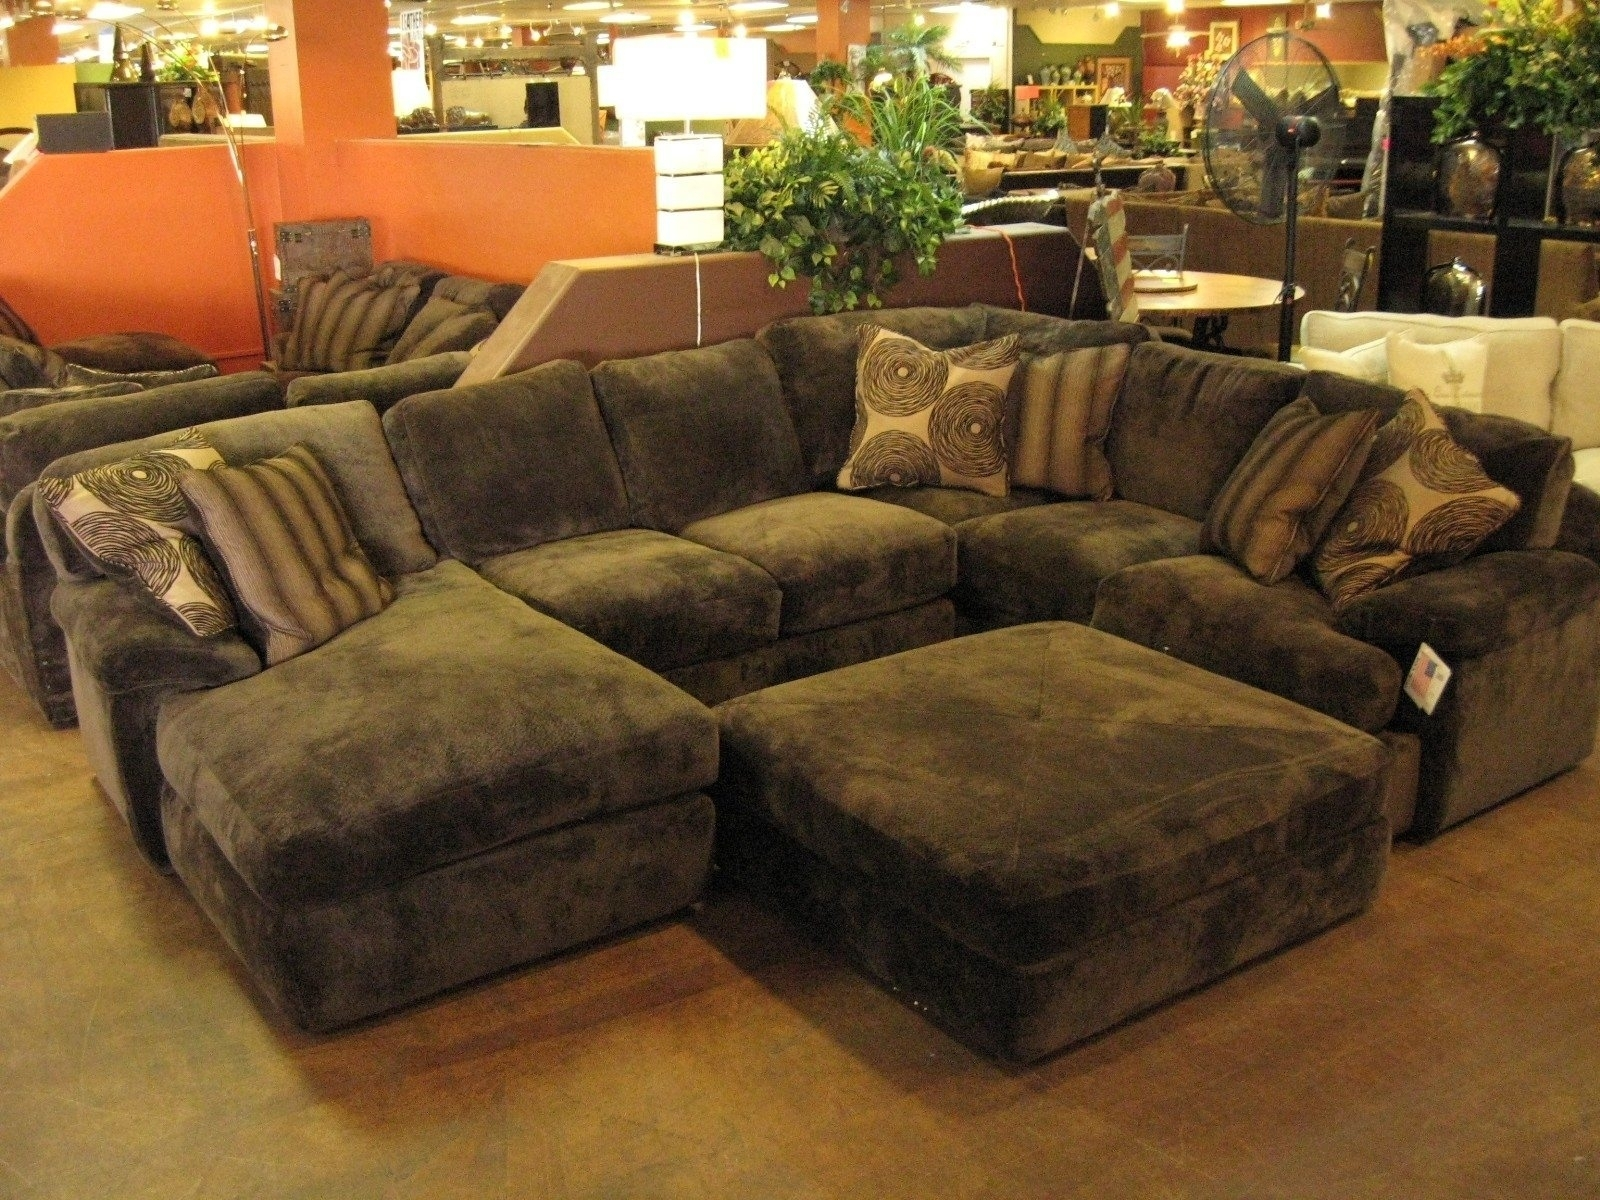 Large Sectional Sofa With Ottoman • Sectional Sofa Regarding Sofas With Ottoman (Image 7 of 10)